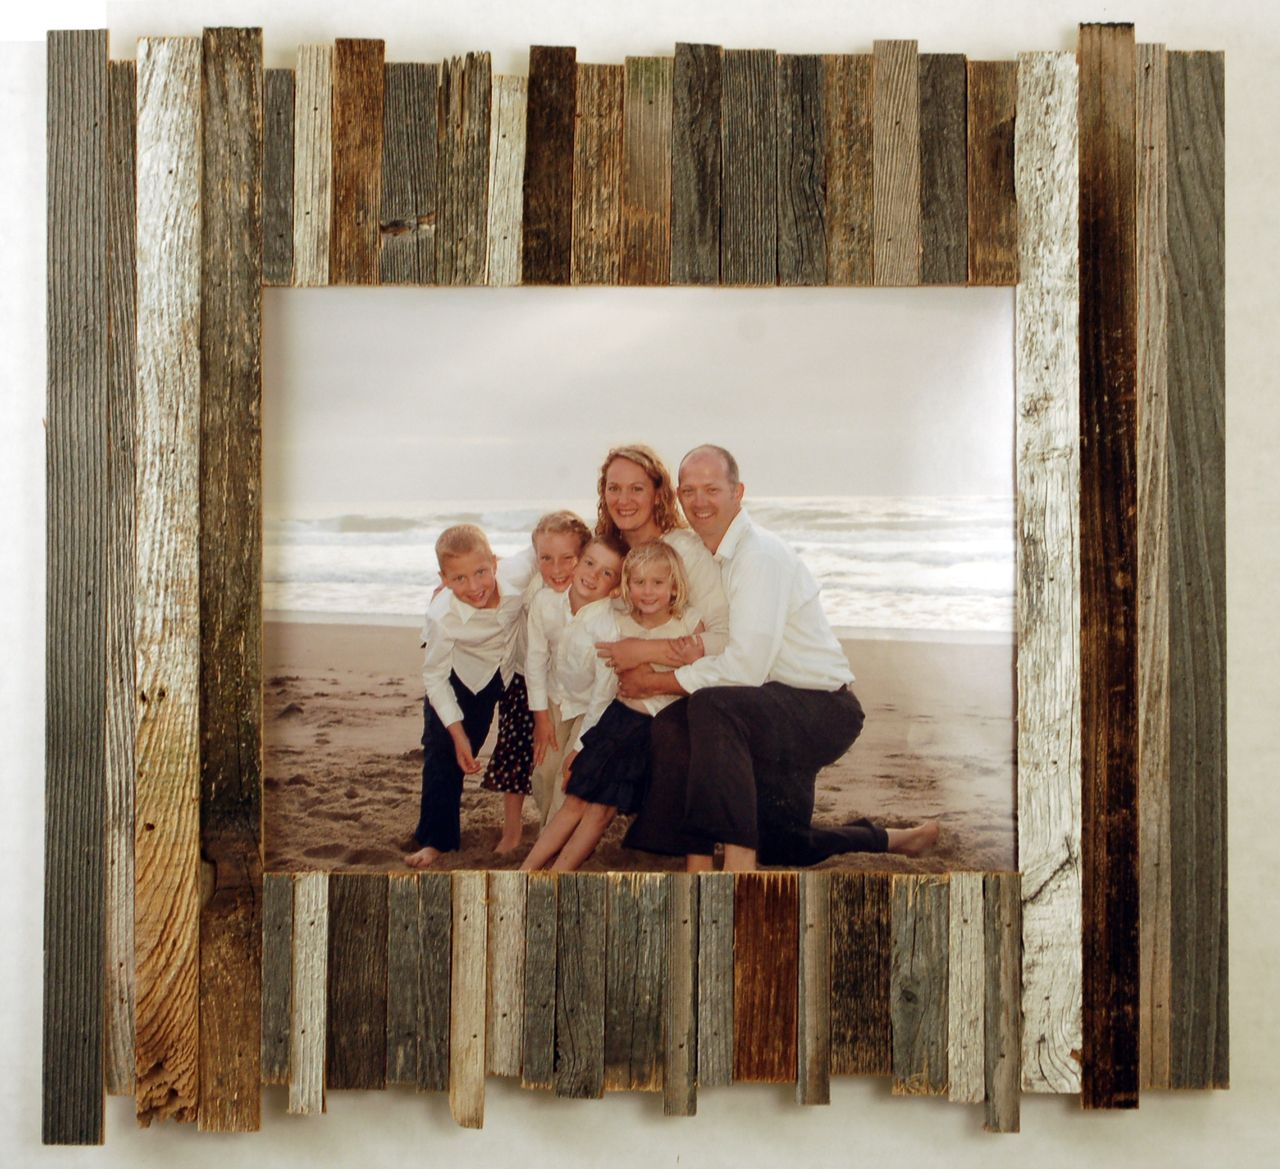 Beachcomber Reclaimed Wood Frame 11x14 Barn Wood Picture Frames Picture On Wood Reclaimed Wood Picture Frames